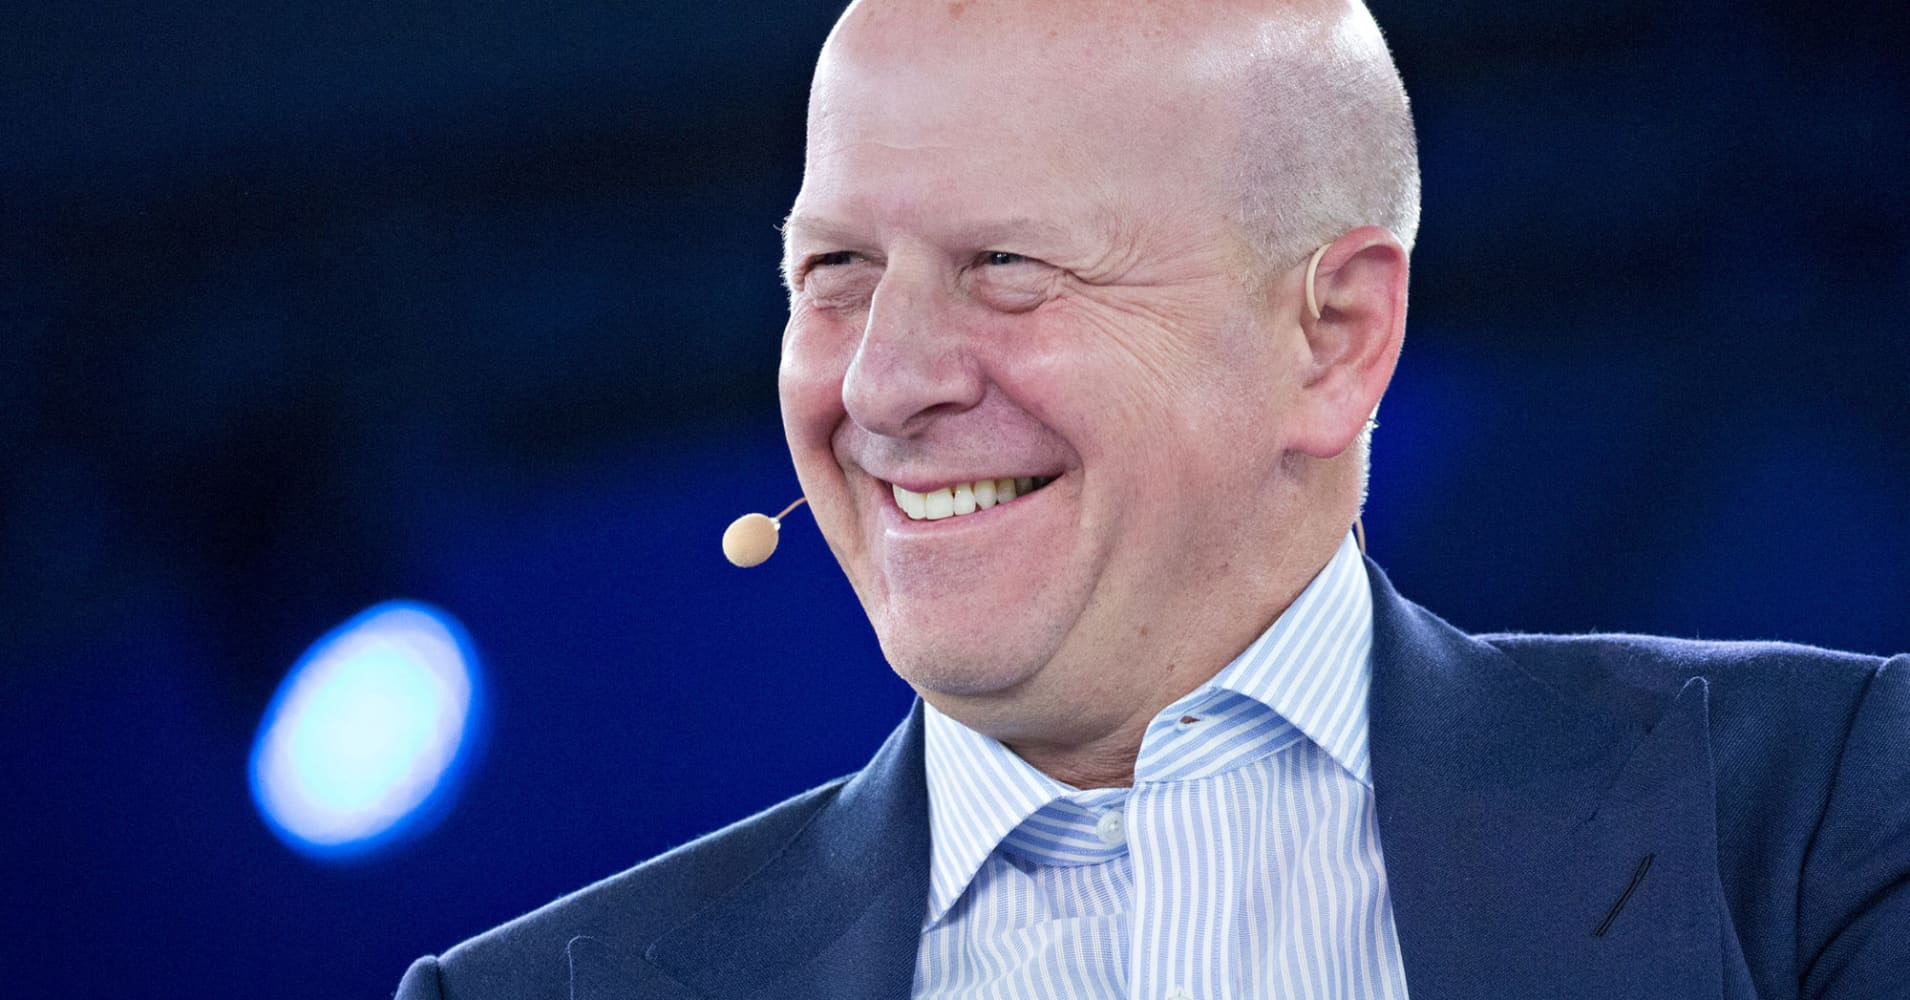 Goldman Sachs shares slump after posting worse-than-expected revenue decline